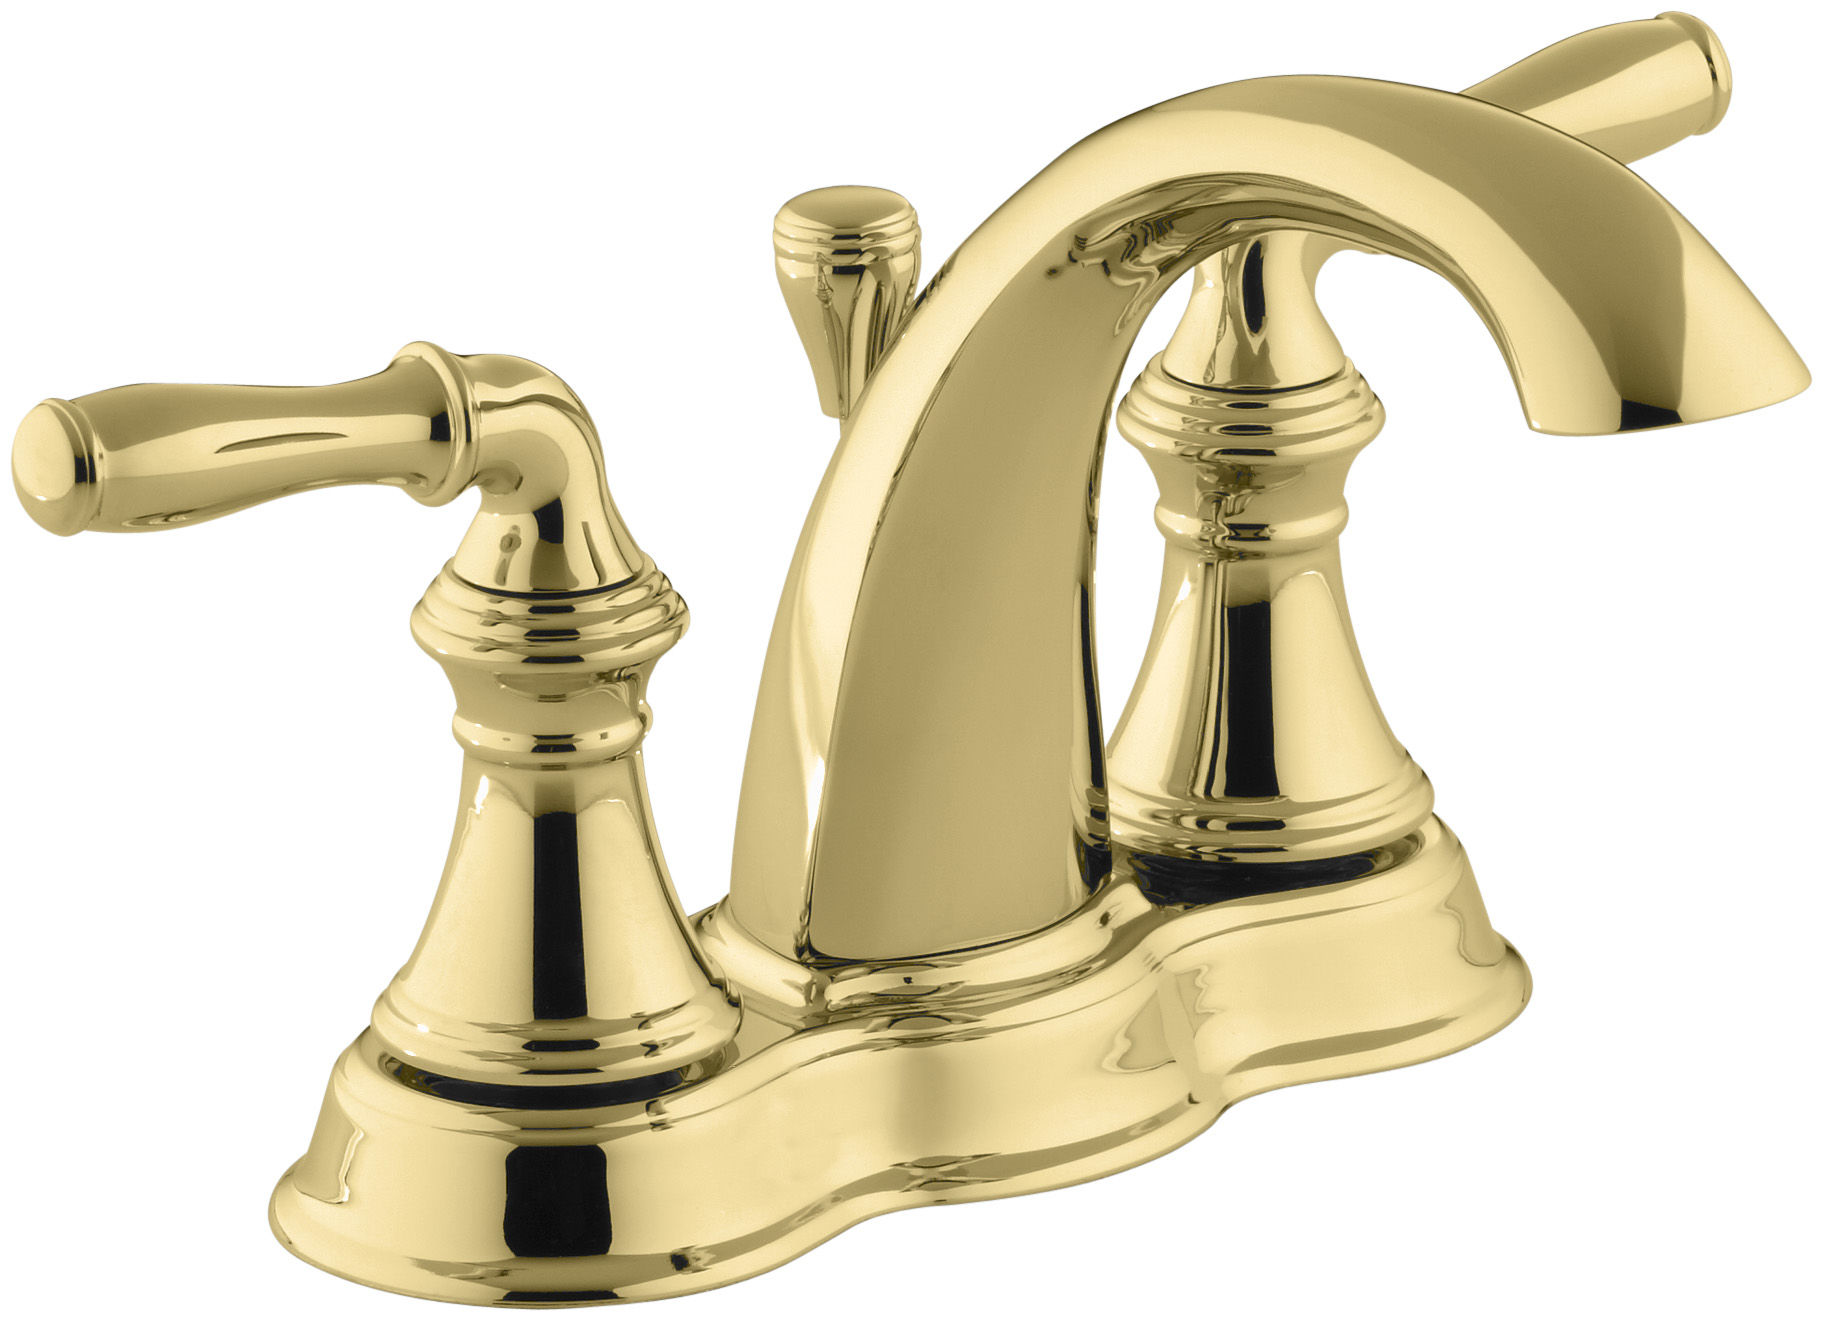 Kohler KNPB Vibrant Polished Brass Devonshire Centerset - Kohler devonshire bathroom fixtures